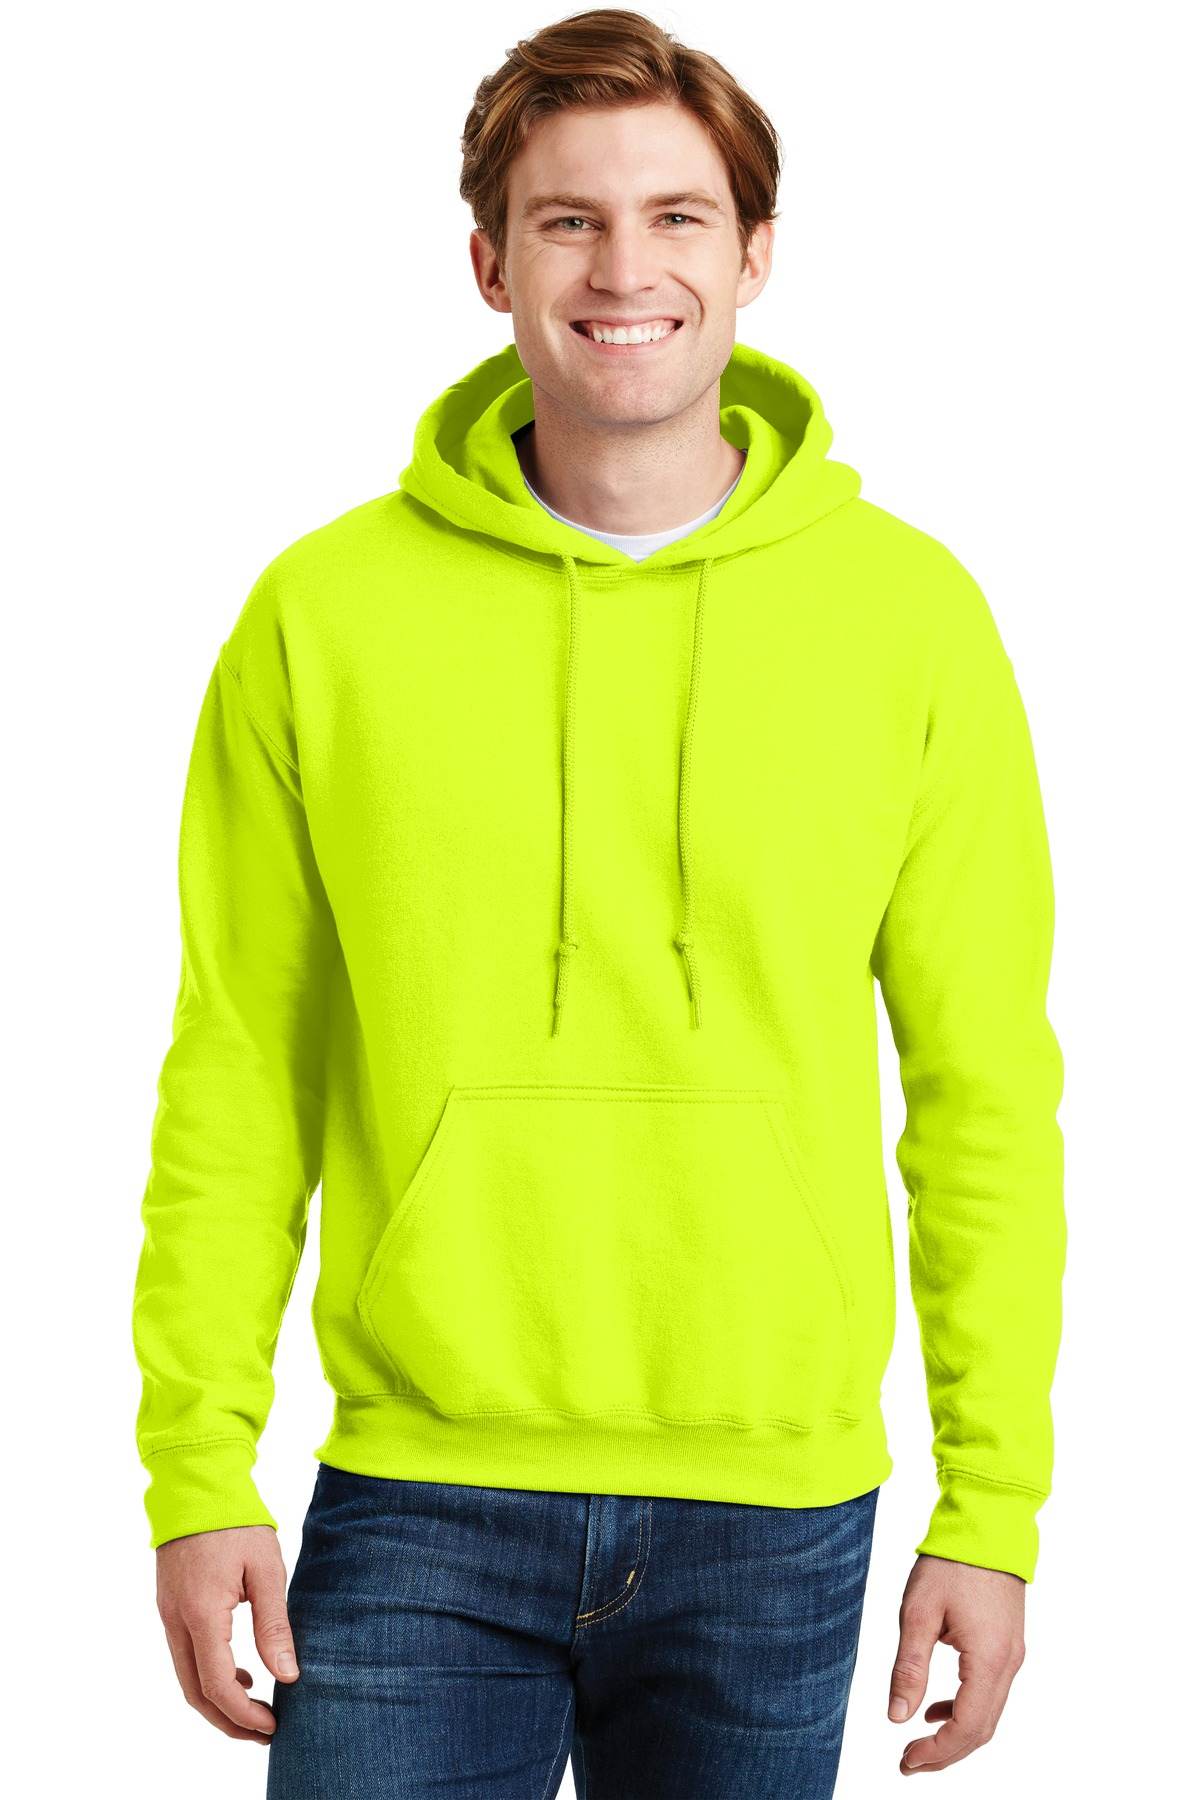 Gildan ®  - DryBlend ®  Pullover Hooded Sweatshirt.  12500 - Safety Green